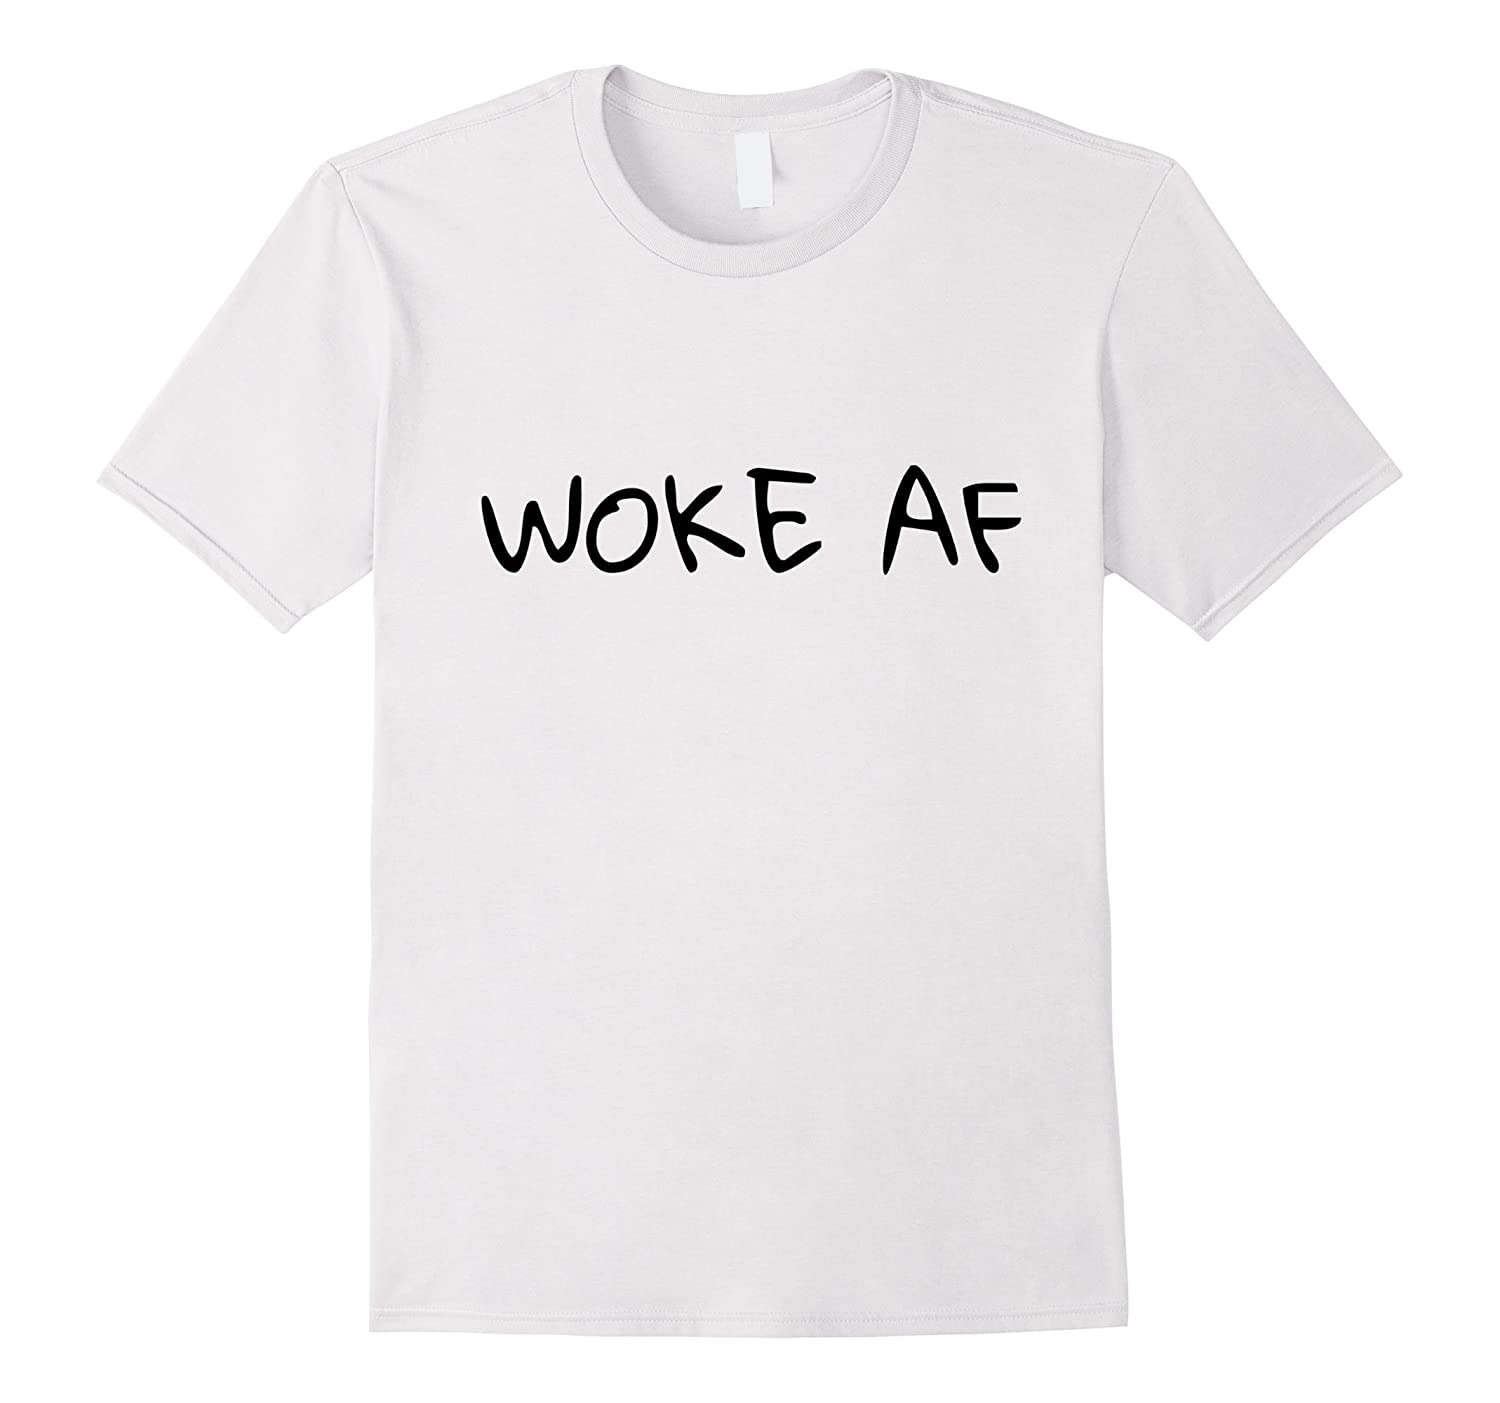 African American Tee Says